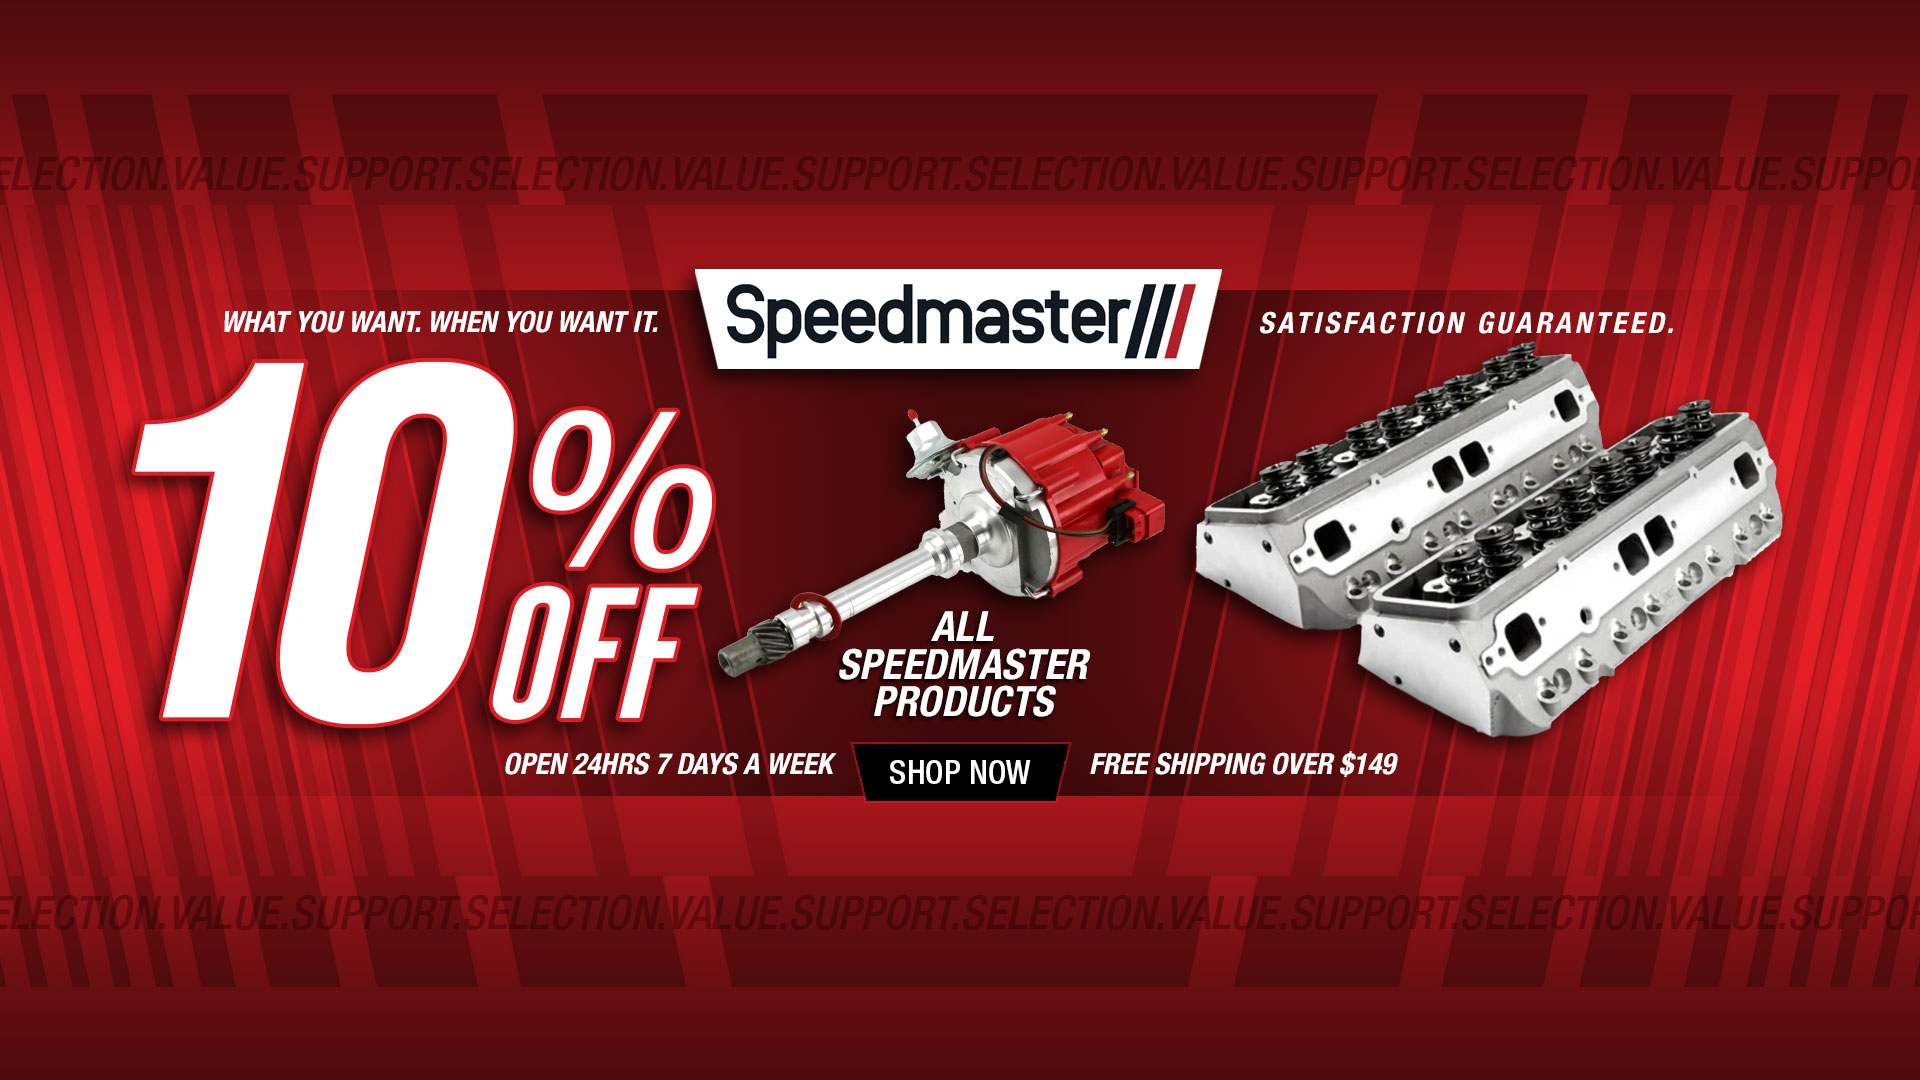 Save 10% on ALL Speedmaster Products